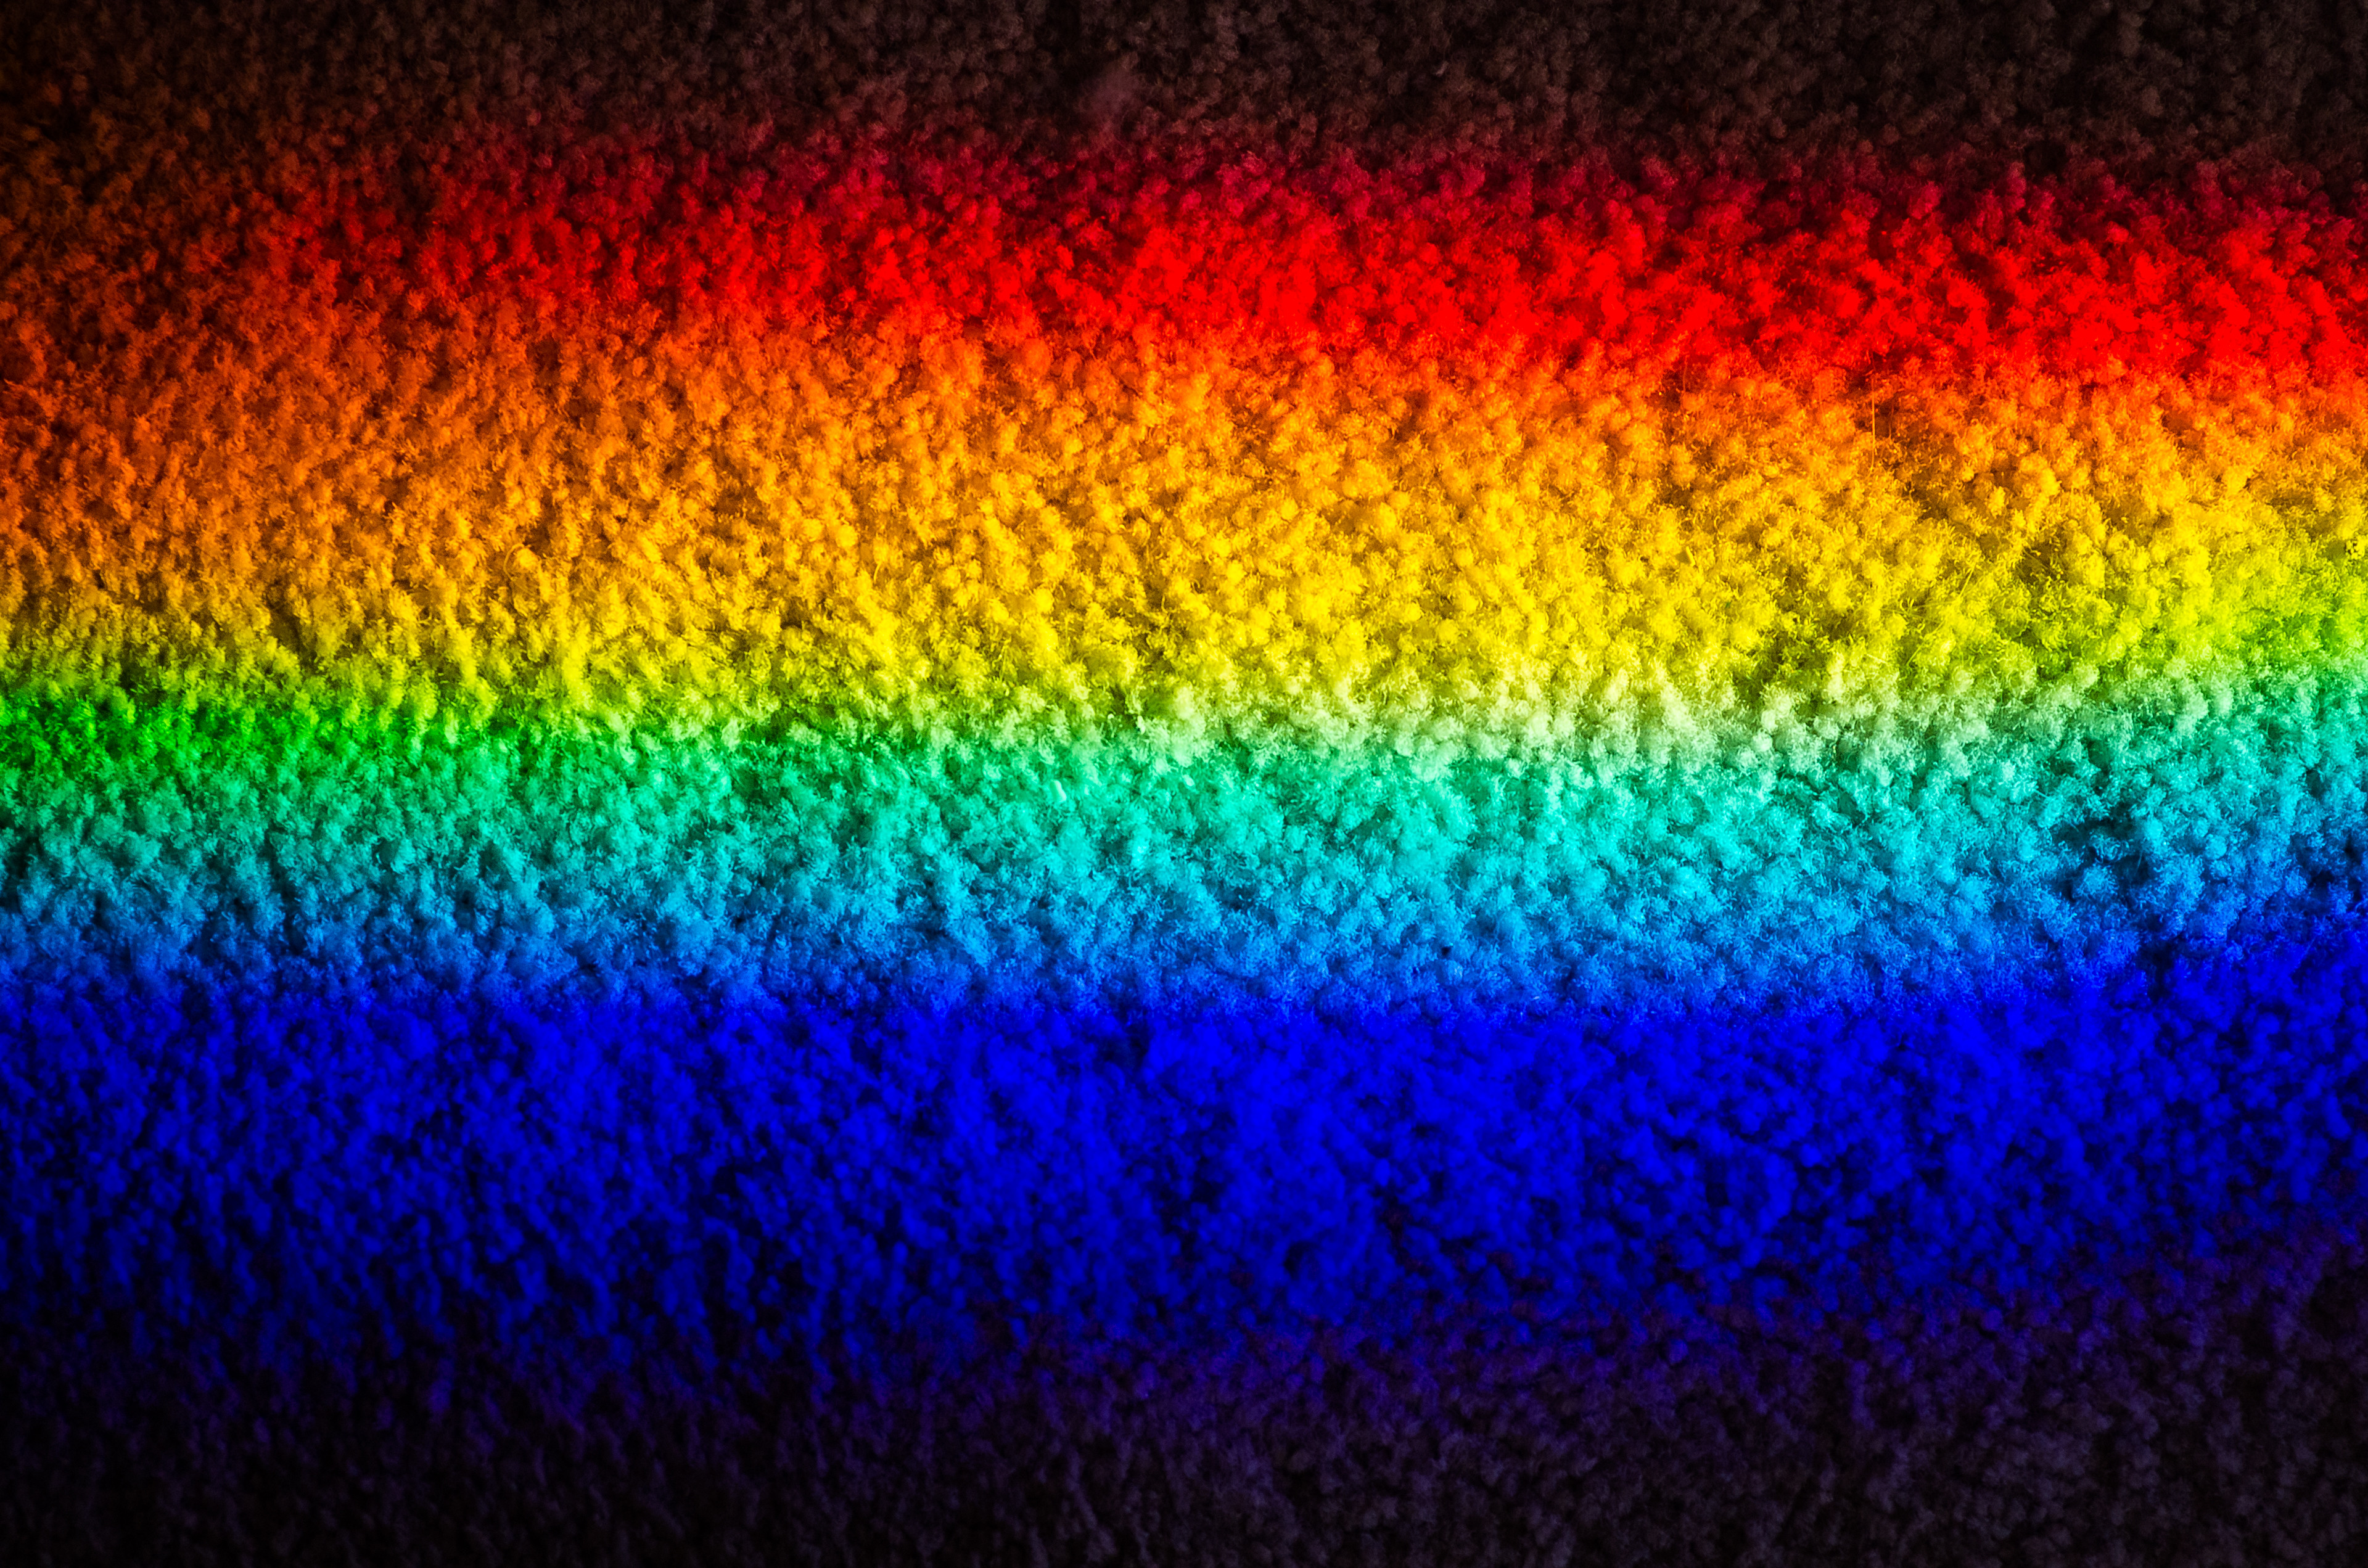 99056 download wallpaper Rainbow, Miscellaneous, Miscellanea, Multicolored, Motley, Texture, Gradient screensavers and pictures for free